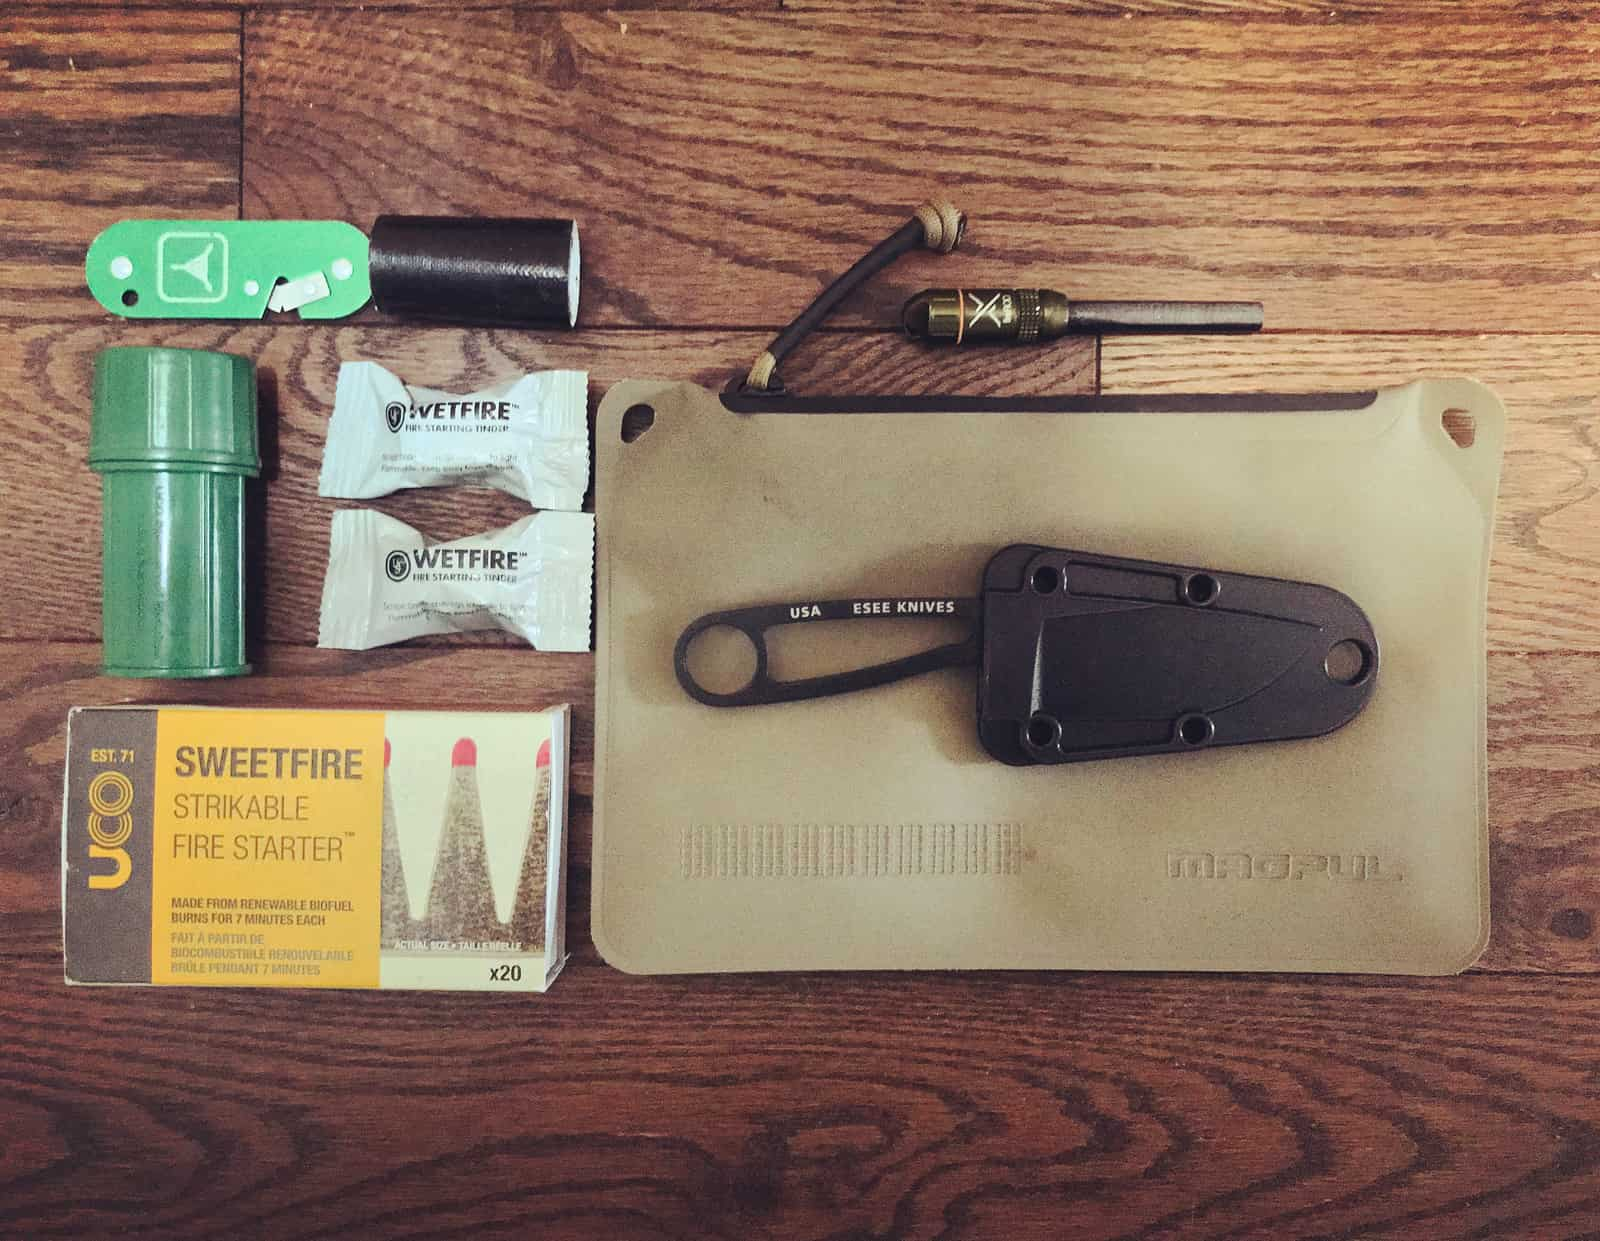 Loadout: Northern Fire Kit ken_jones_outdoors